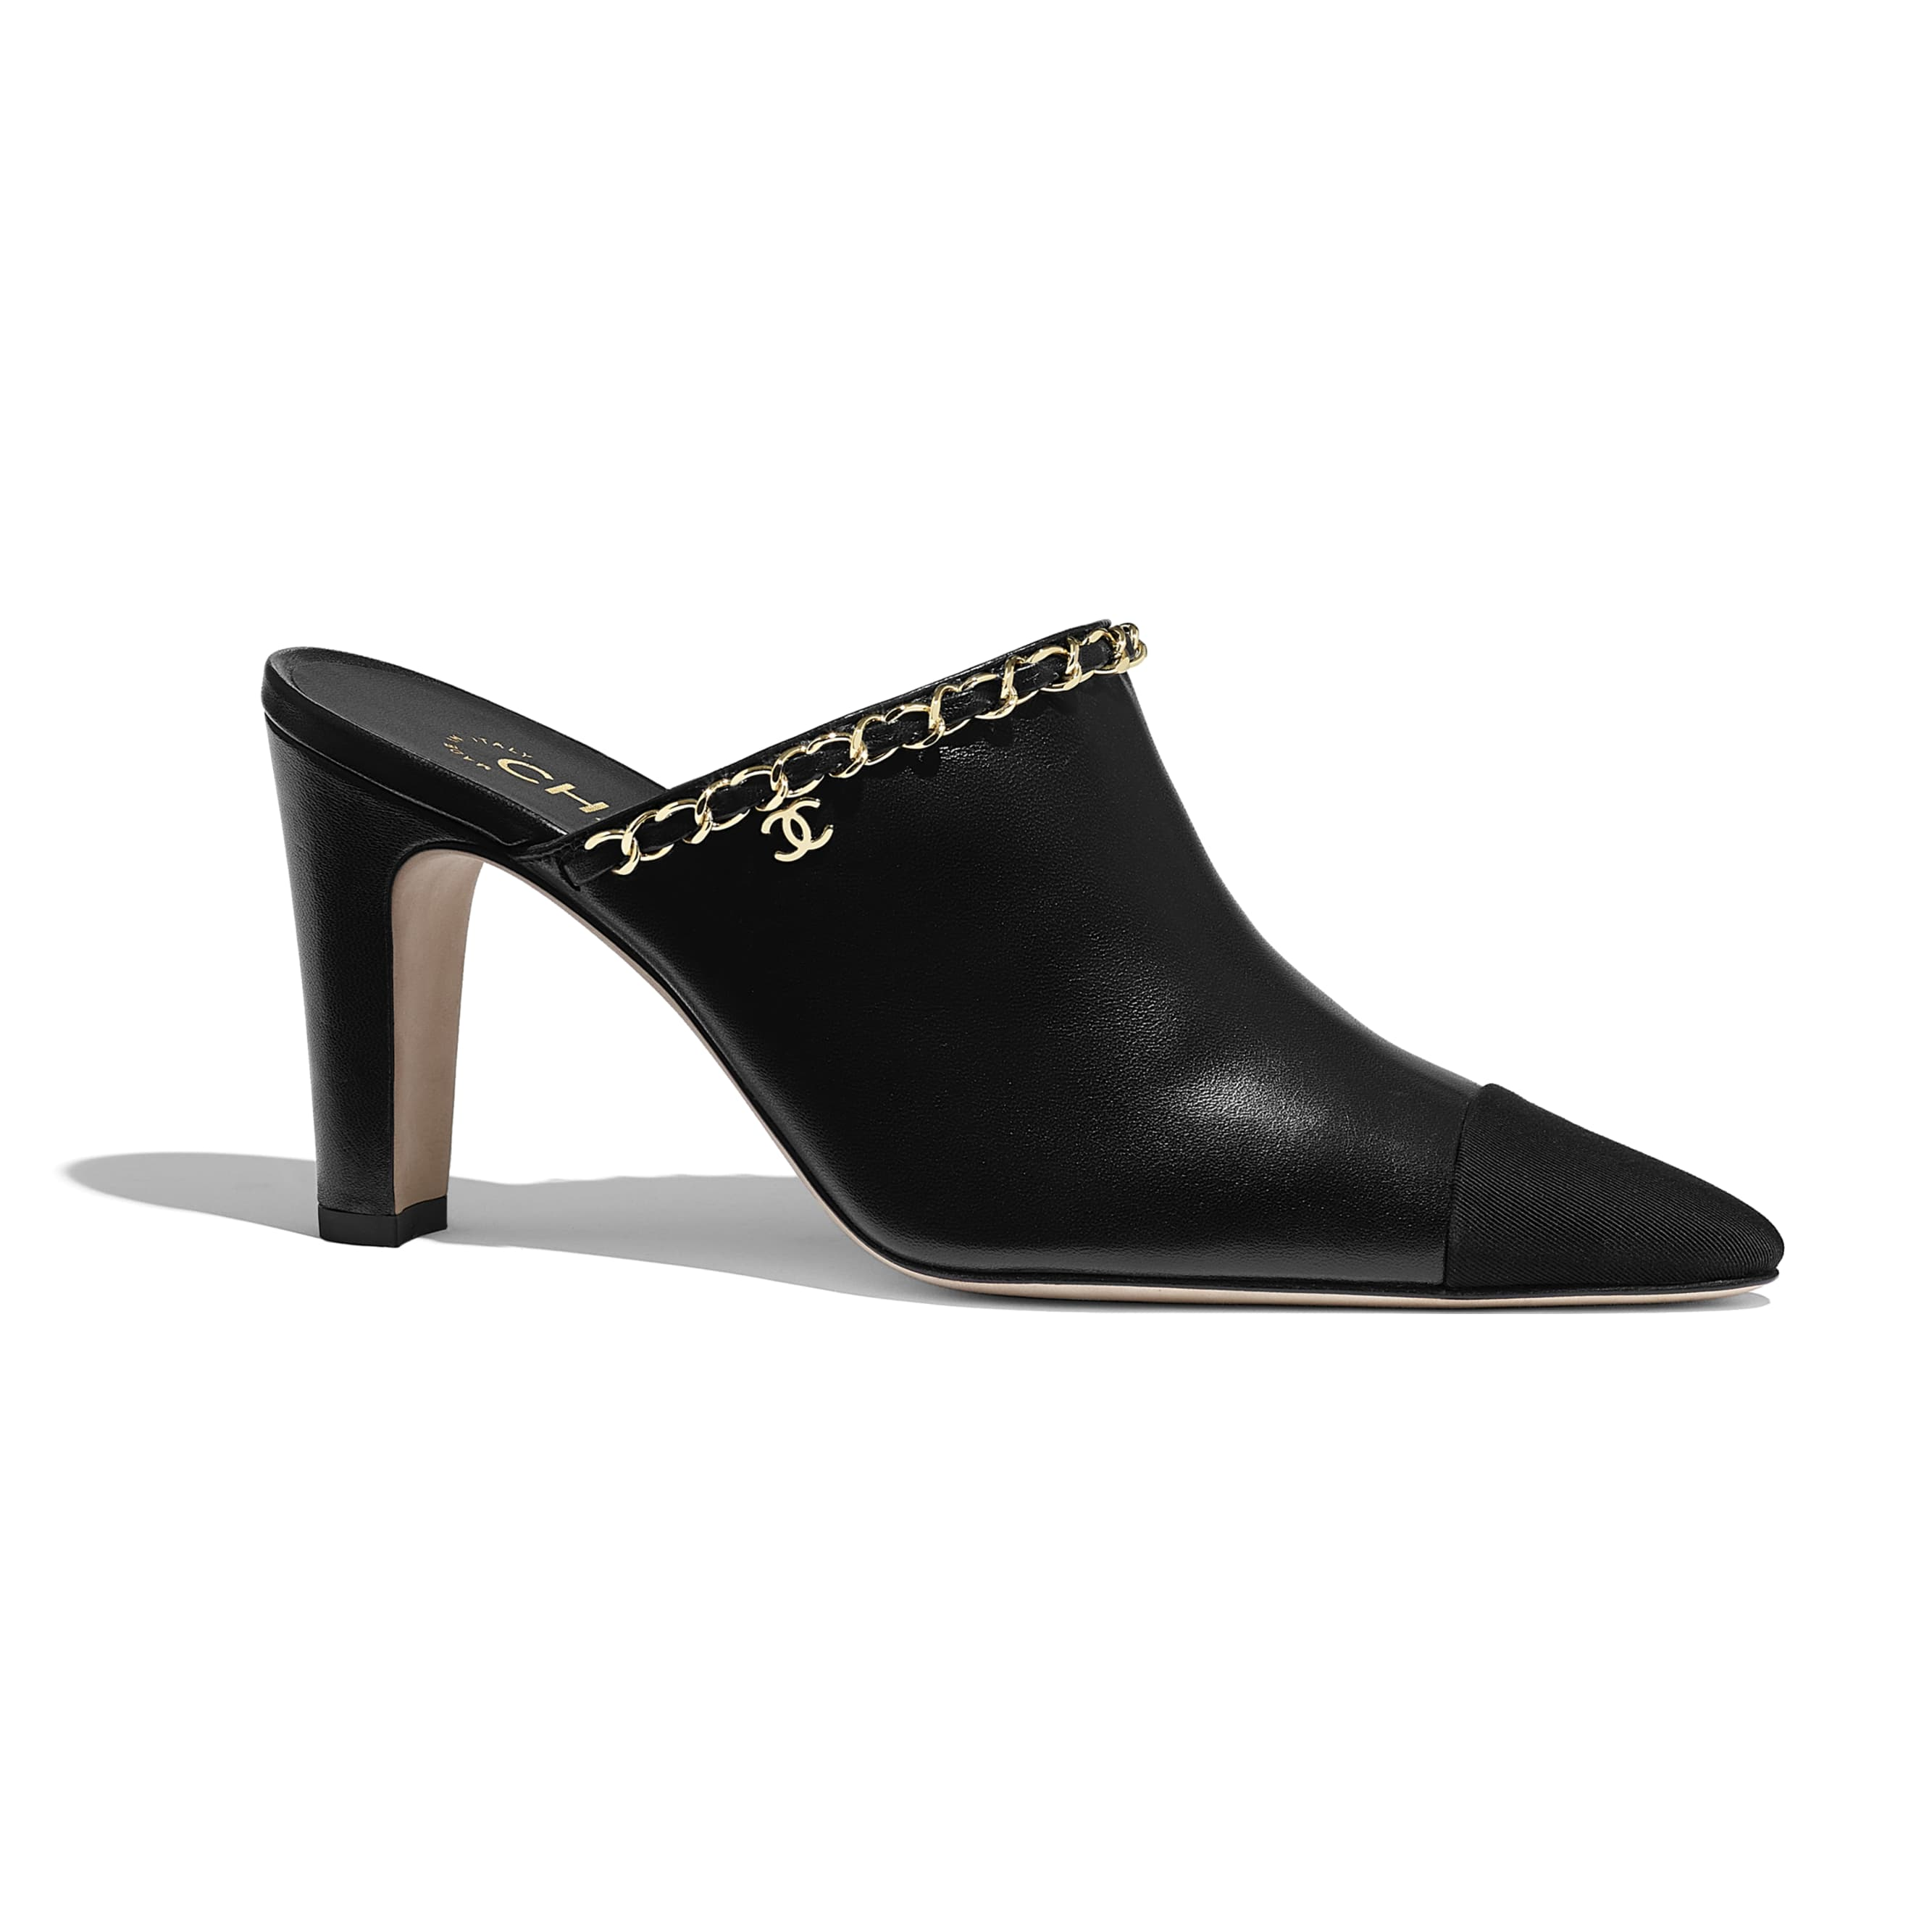 Mules - Black - Lambskin - CHANEL - Default view - see standard sized version